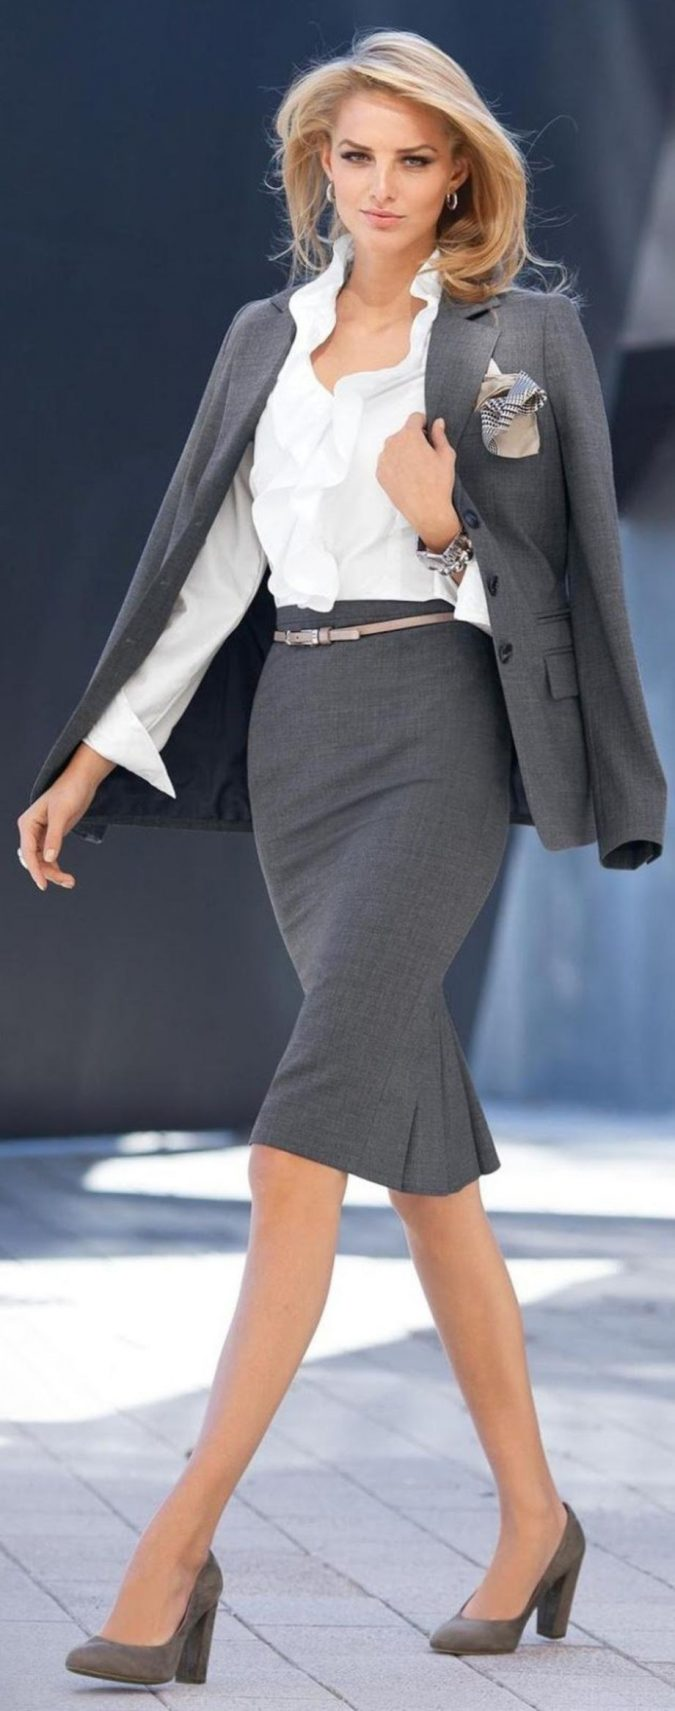 summer-work-outfit-skirt-suit-2-675x1711 80+ Elegant Summer Outfit Ideas for Business Women